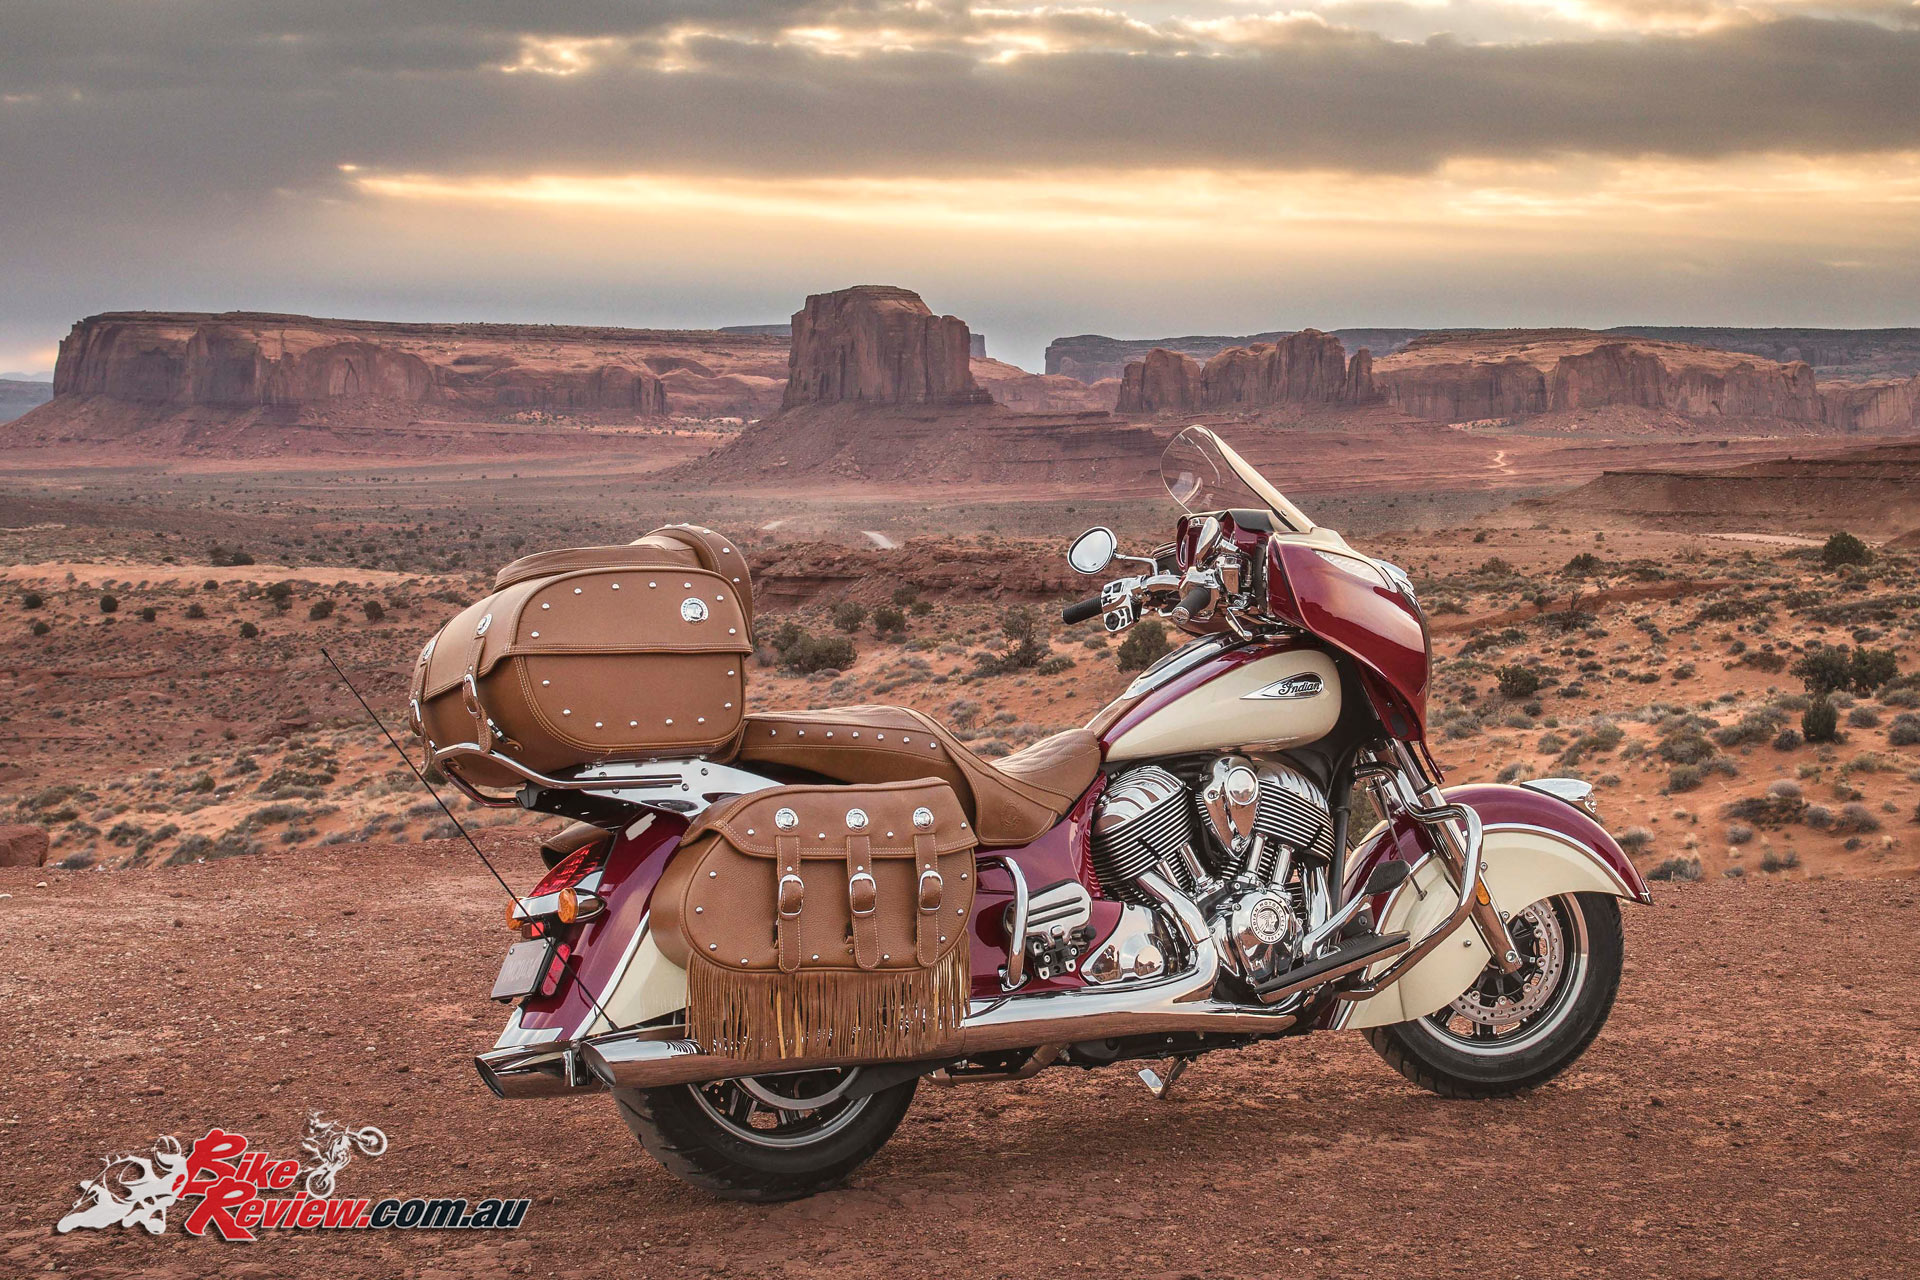 2017 Suzuki Motorcycles >> Indian Motorcycles introduce Roadmaster Classic - Bike Review